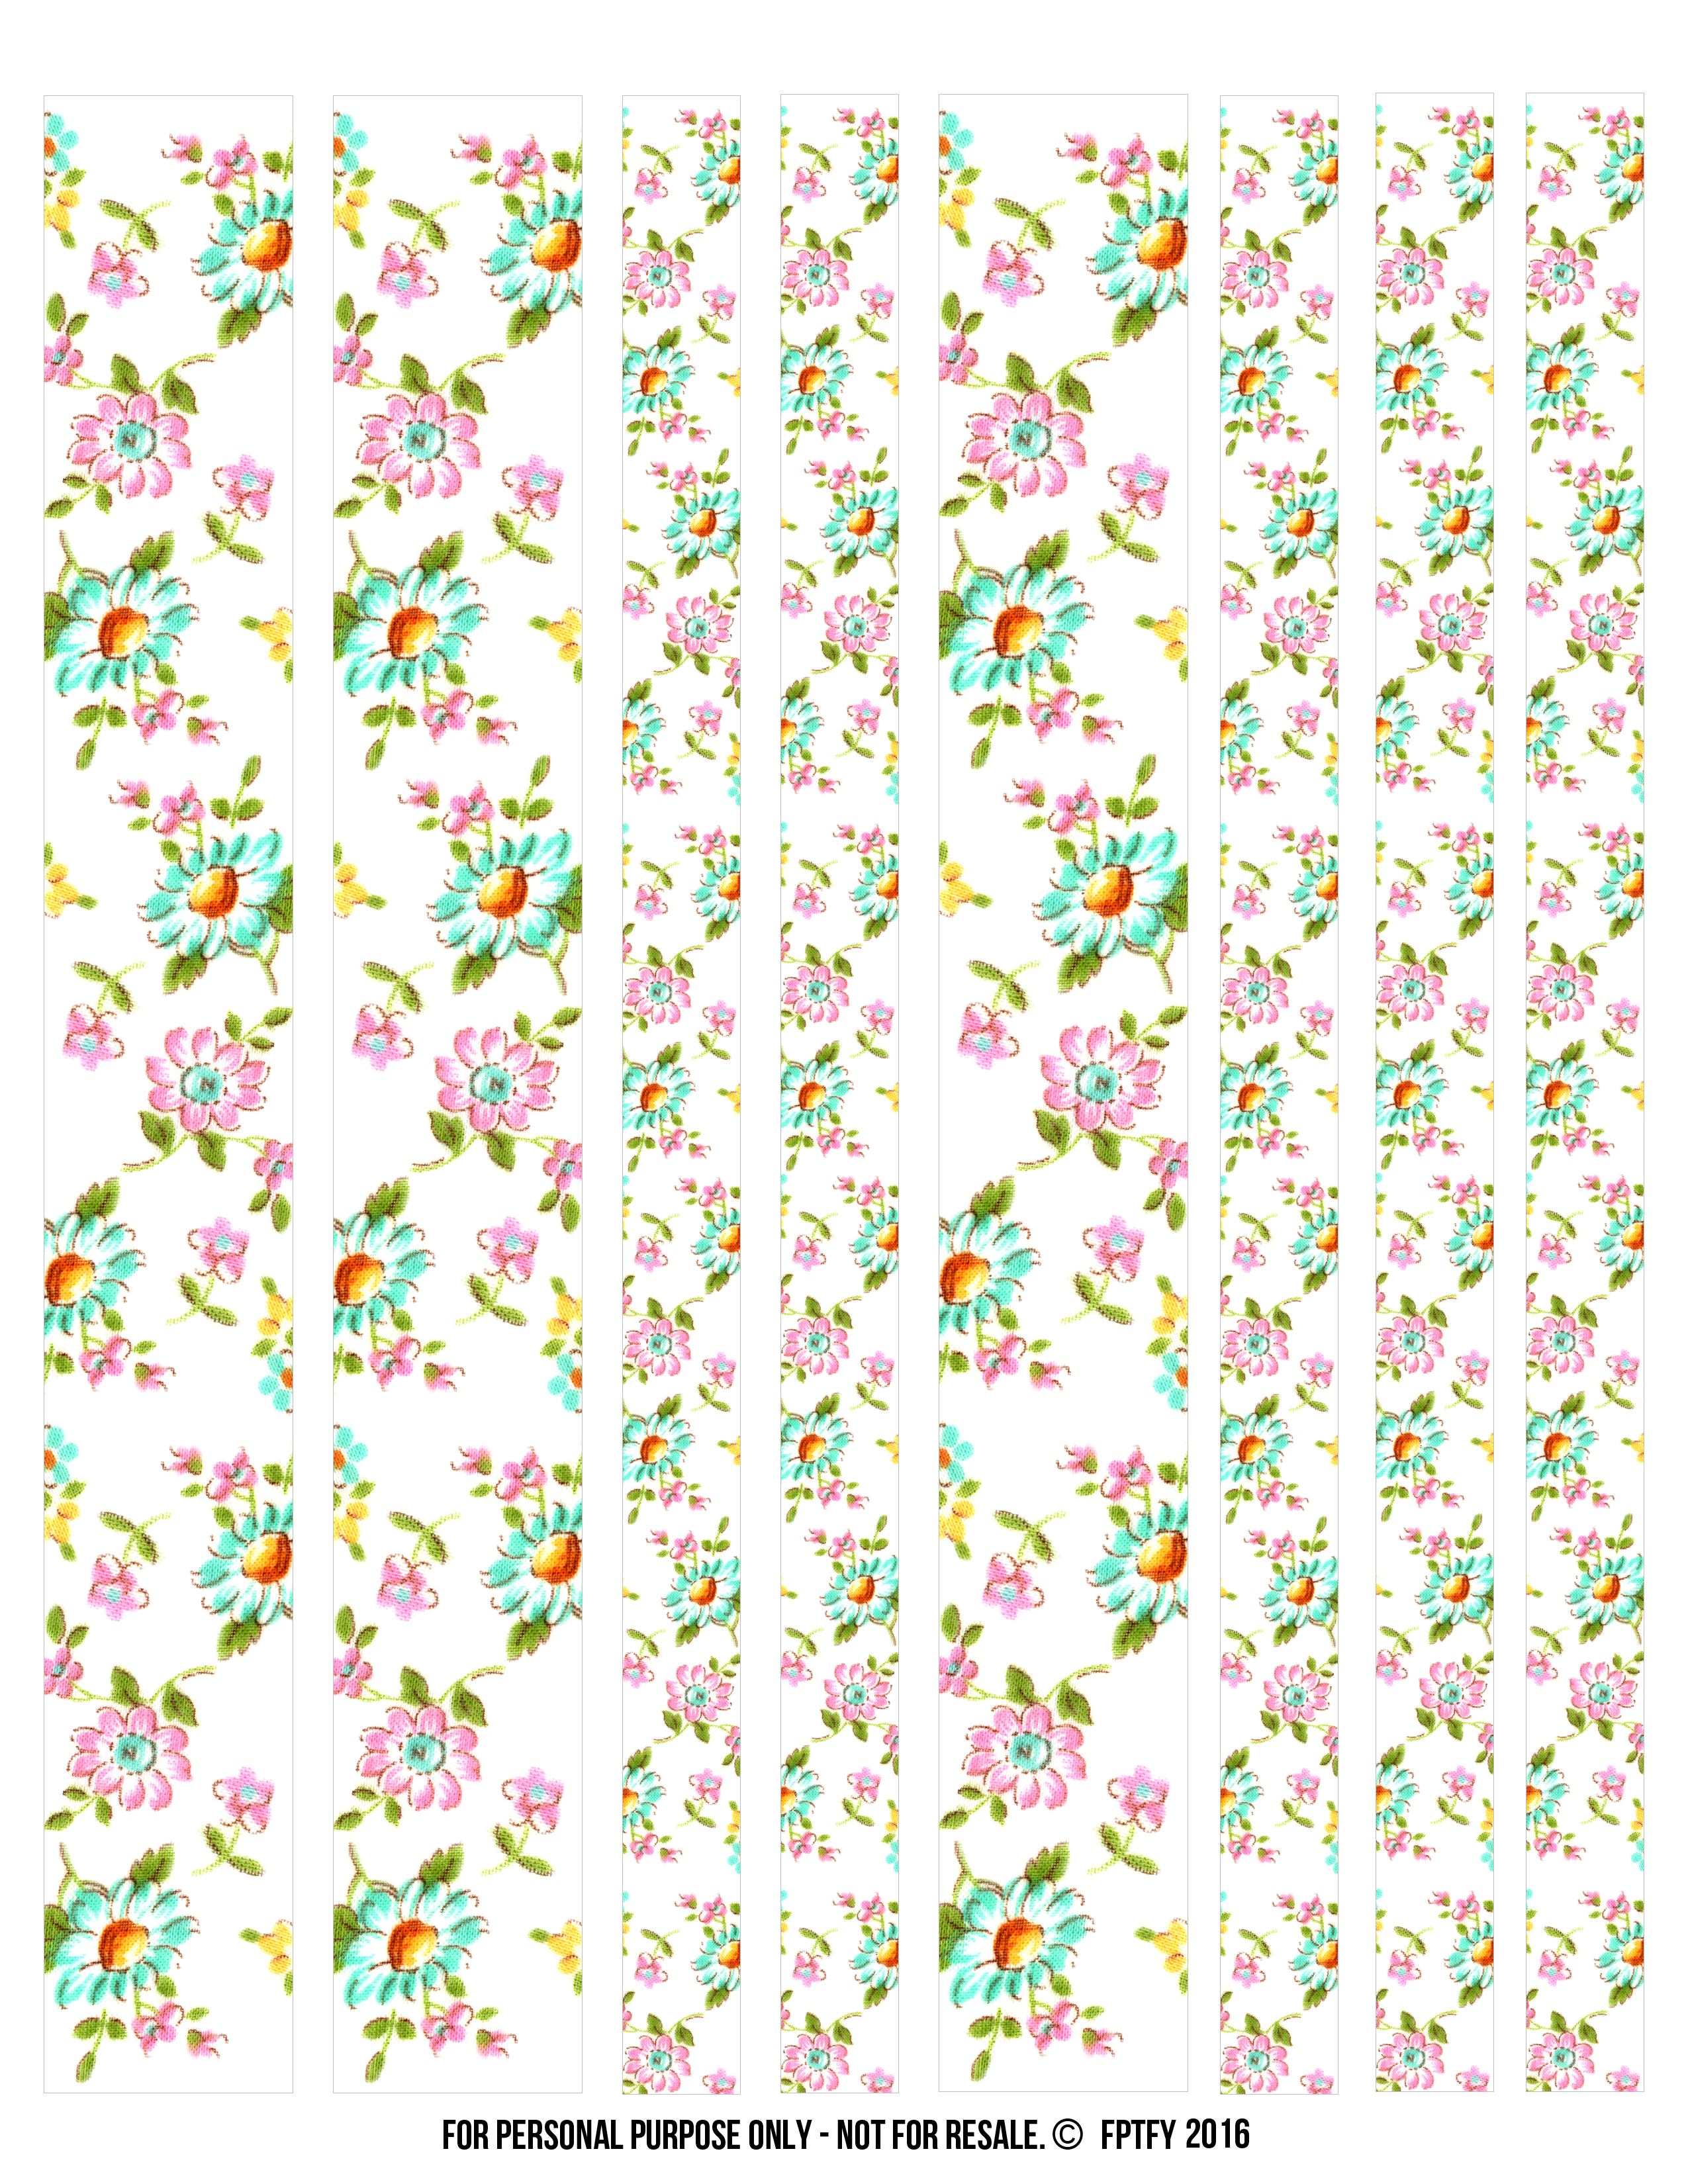 photograph relating to Free Printable Washi Tape referred to as Totally free Floral Electronic Washi Tape! - Absolutely free Rather Factors For By yourself